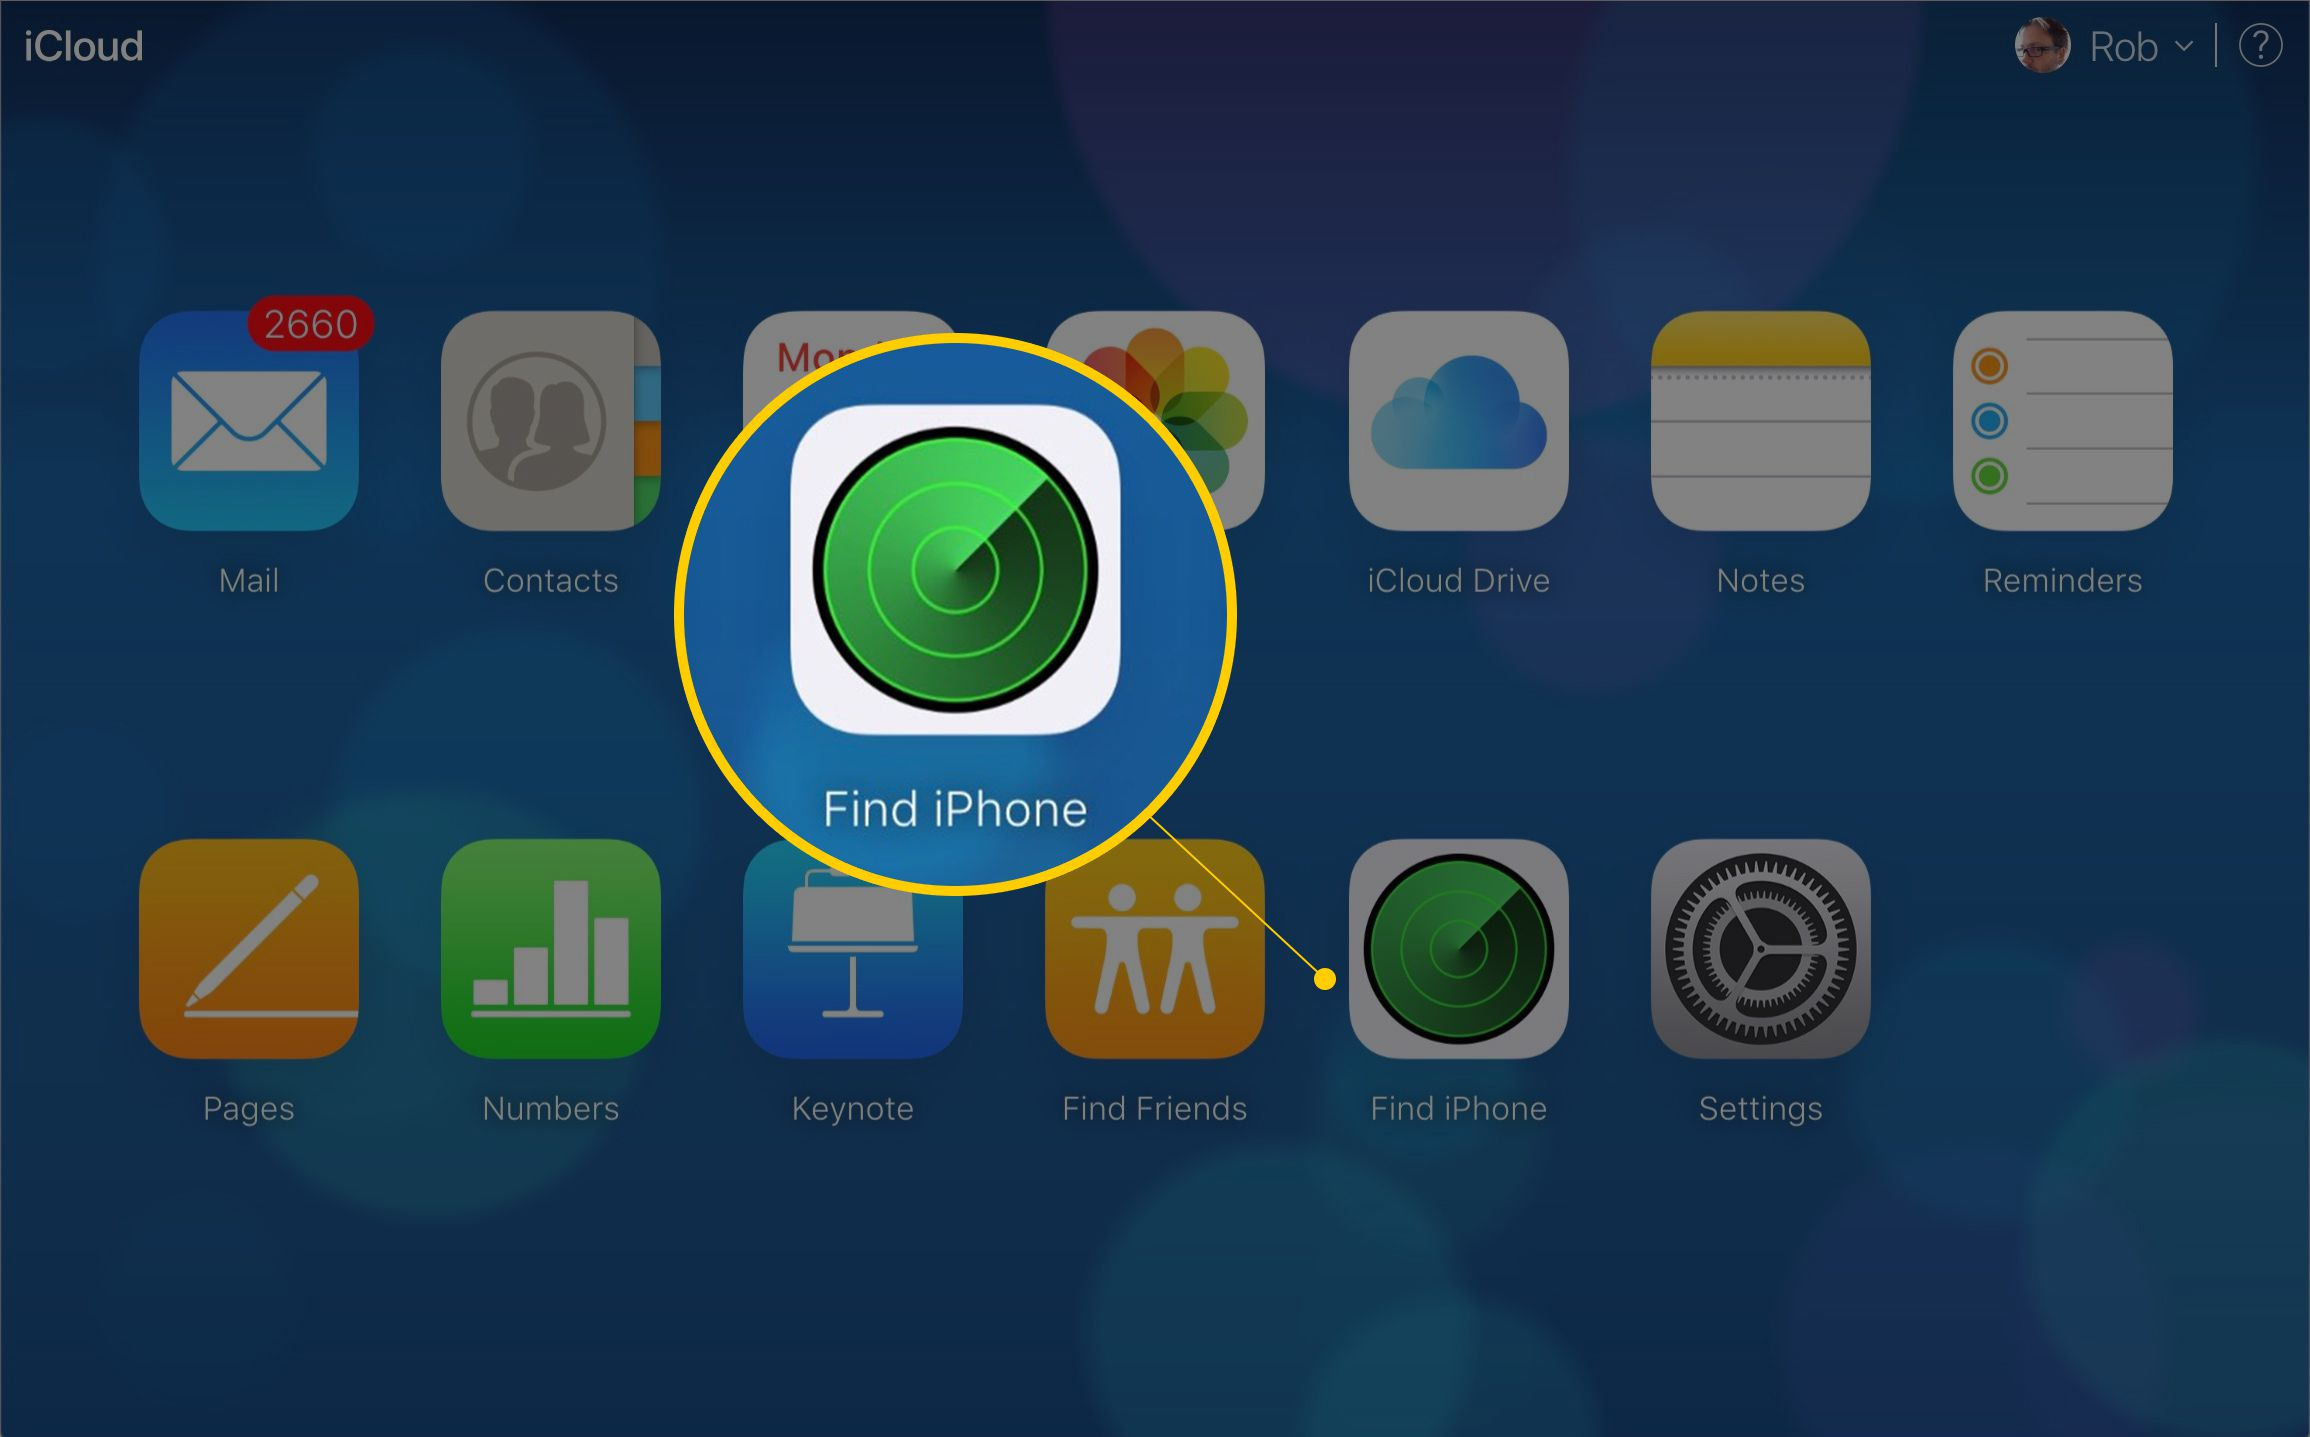 Find iPhone icon on iCloud webpage